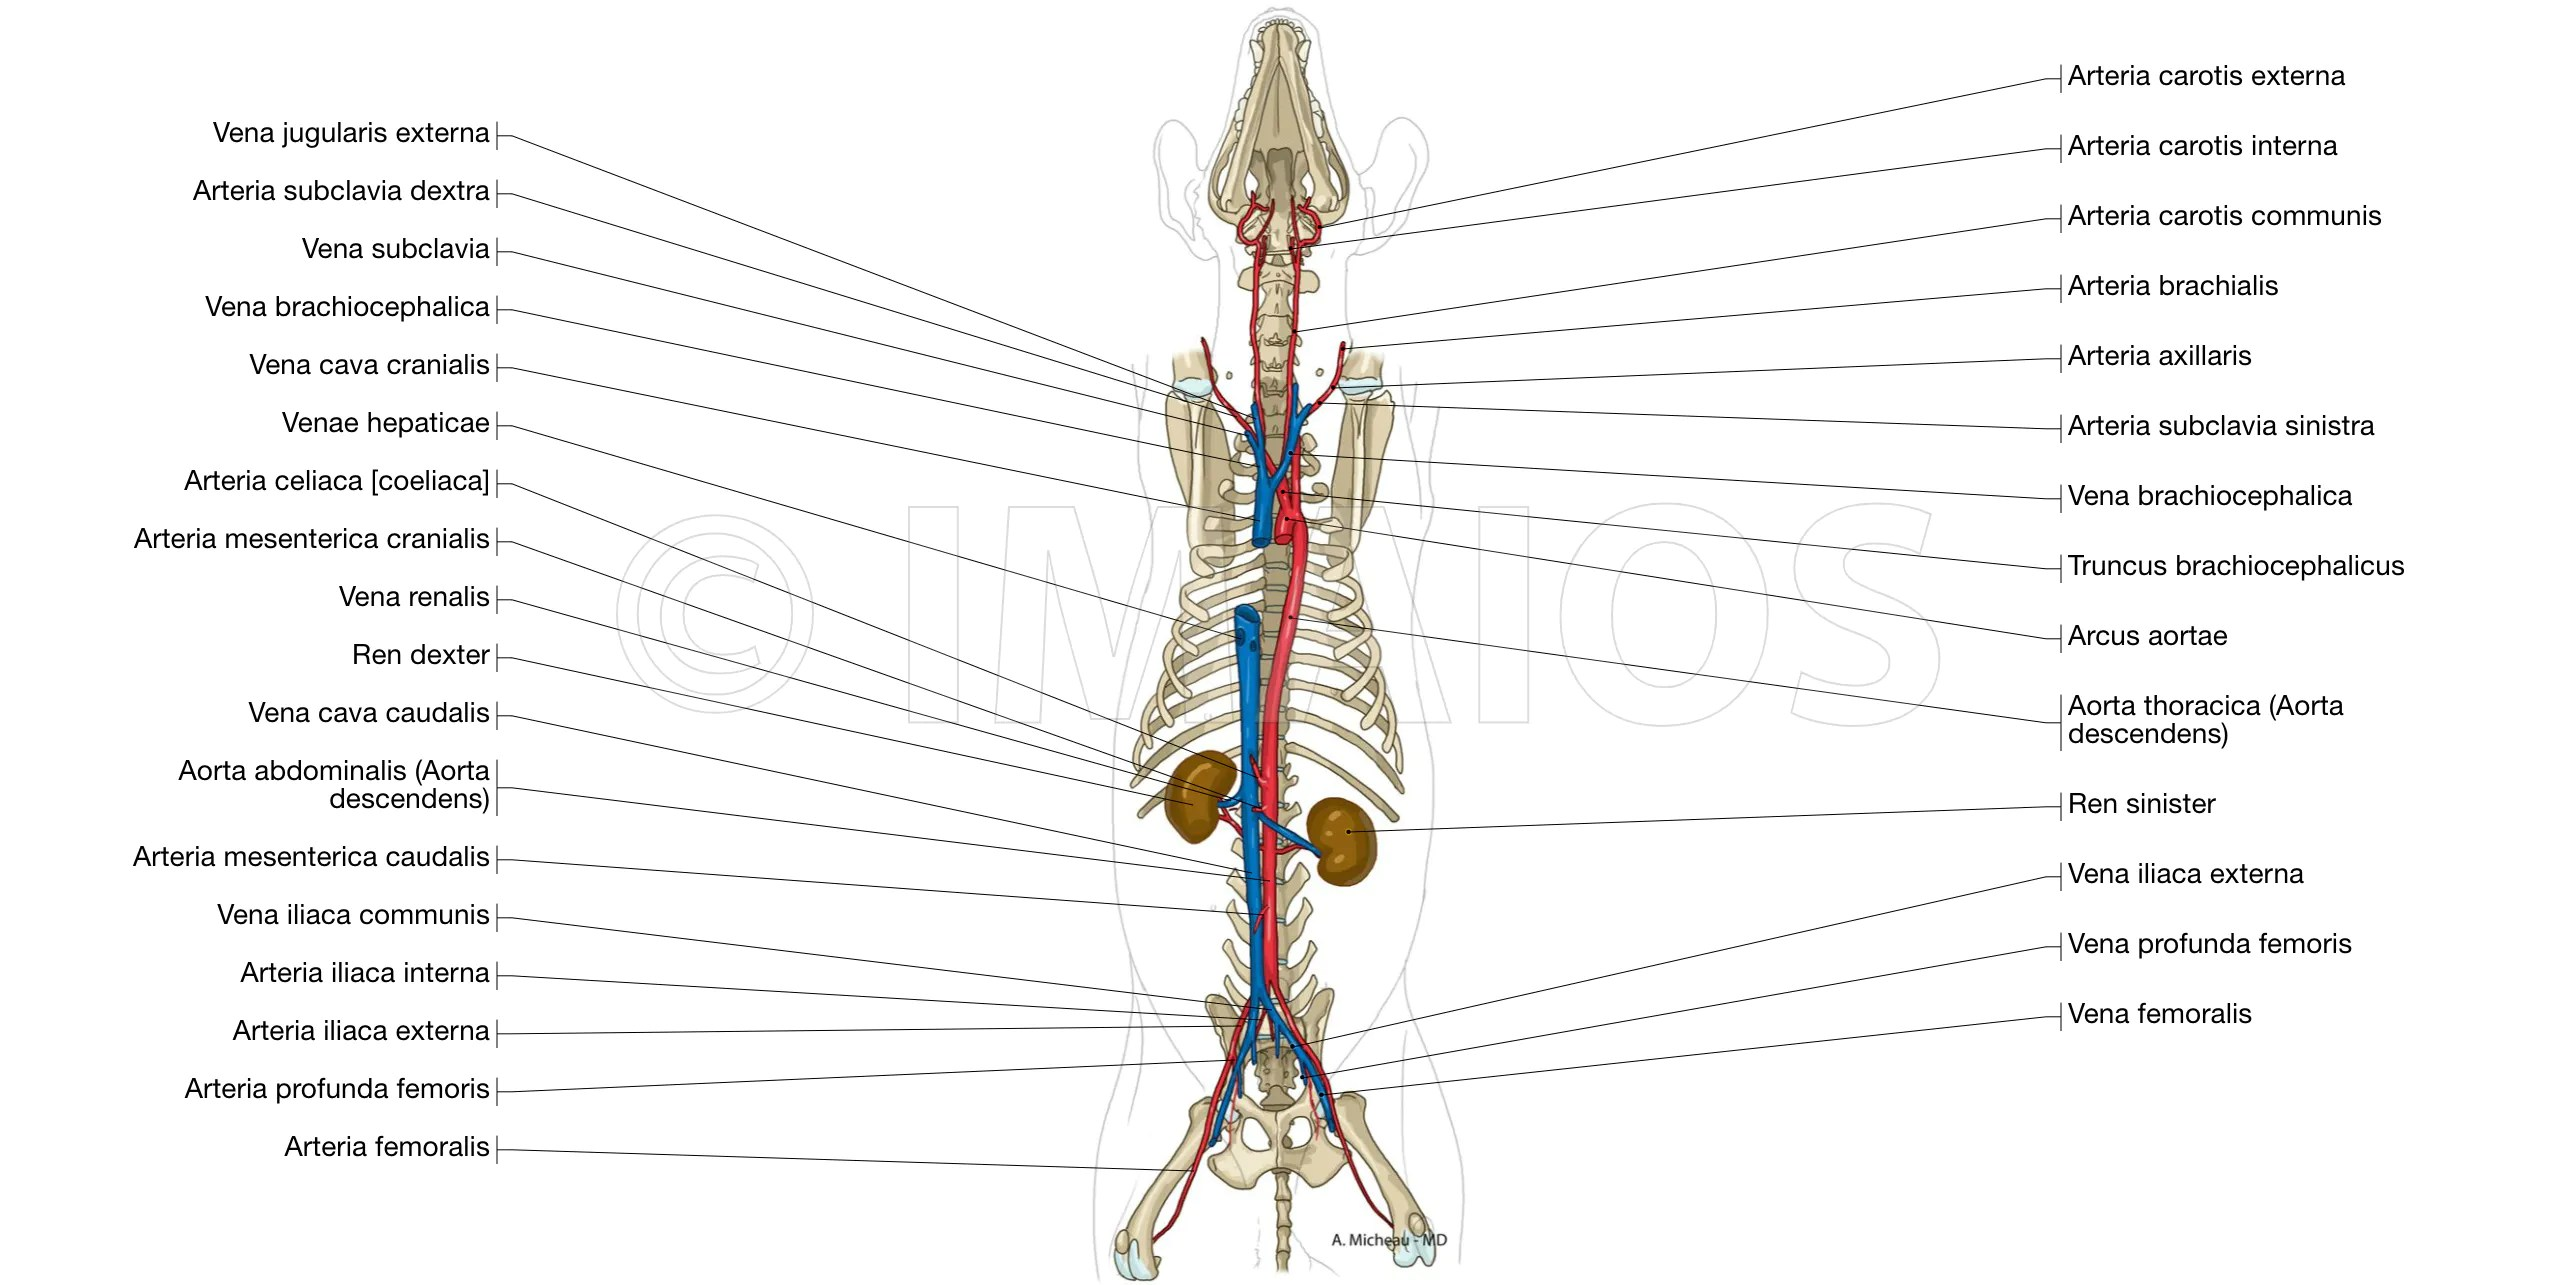 dog internal anatomy diagram 1998 dodge neon radio wiring labeled atlas of illustrations the animal cardiovascular system arteries veins thoracic aorta caudal